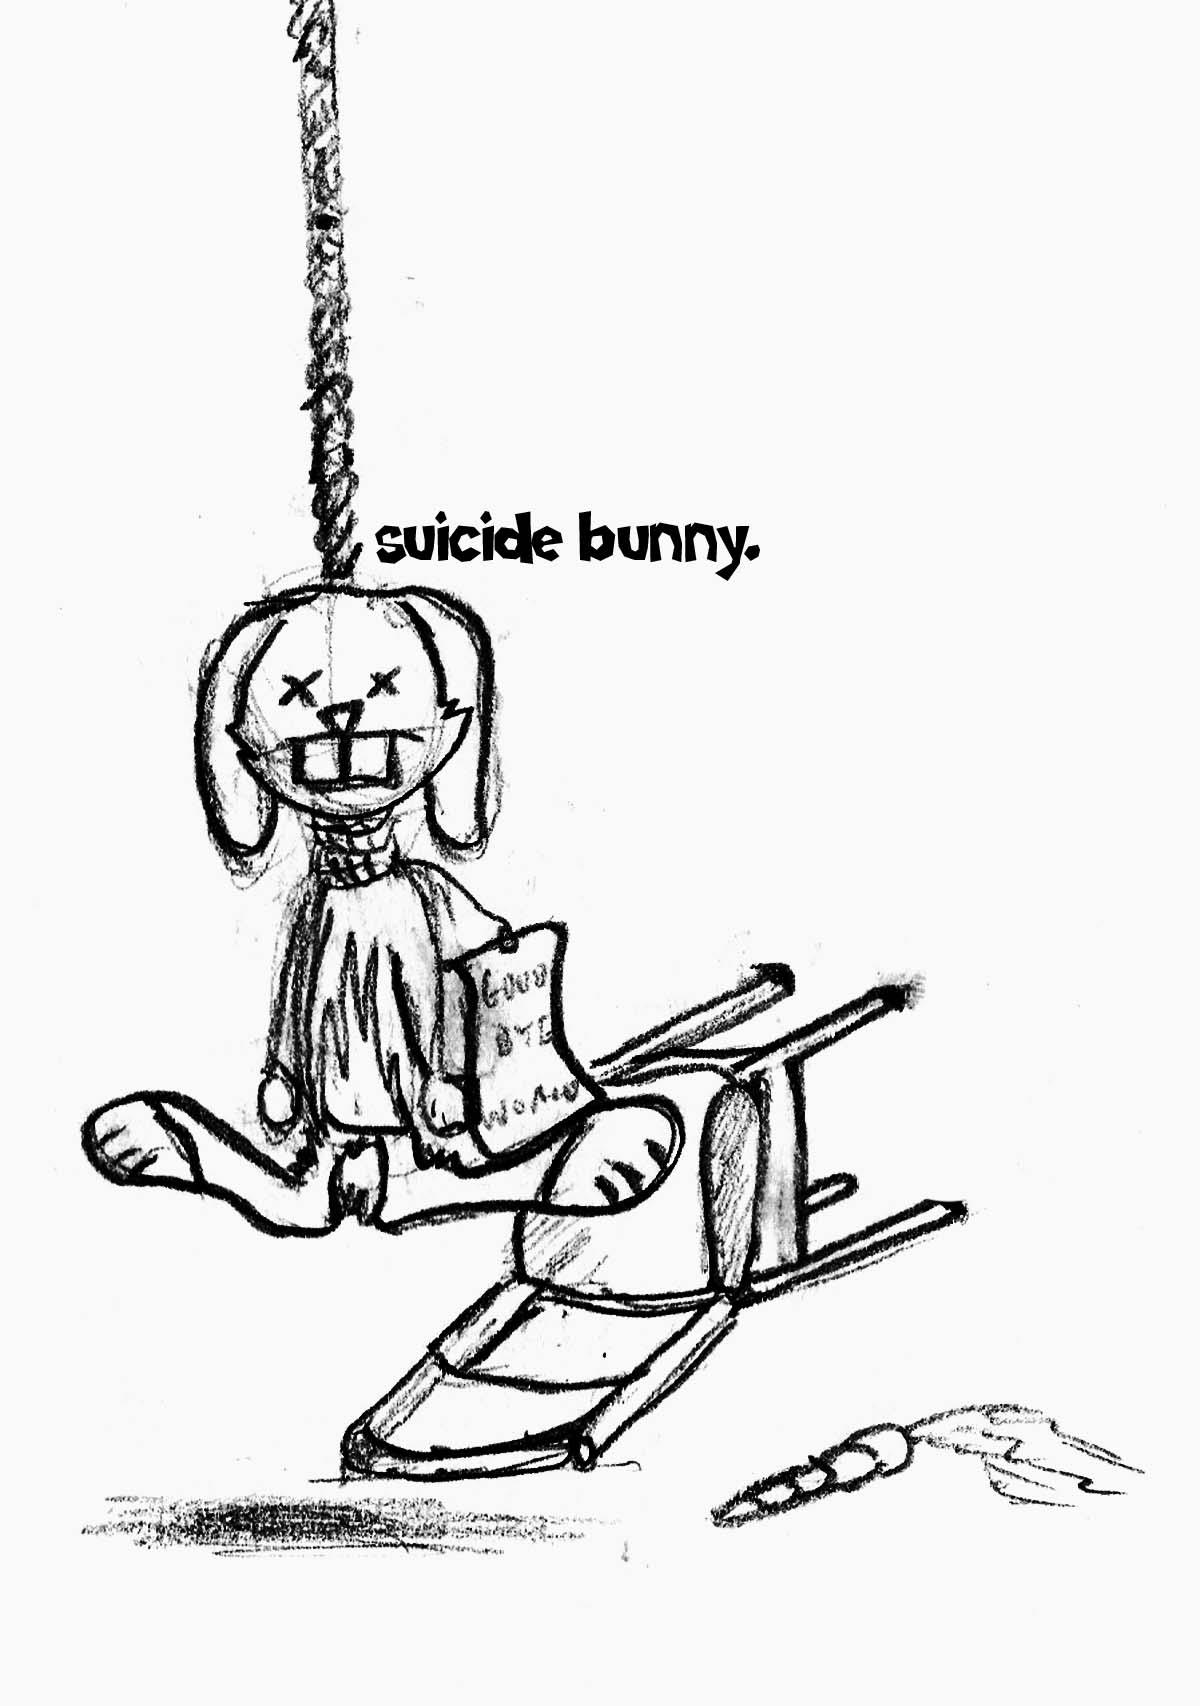 Mr bunny hates his life by mortichro